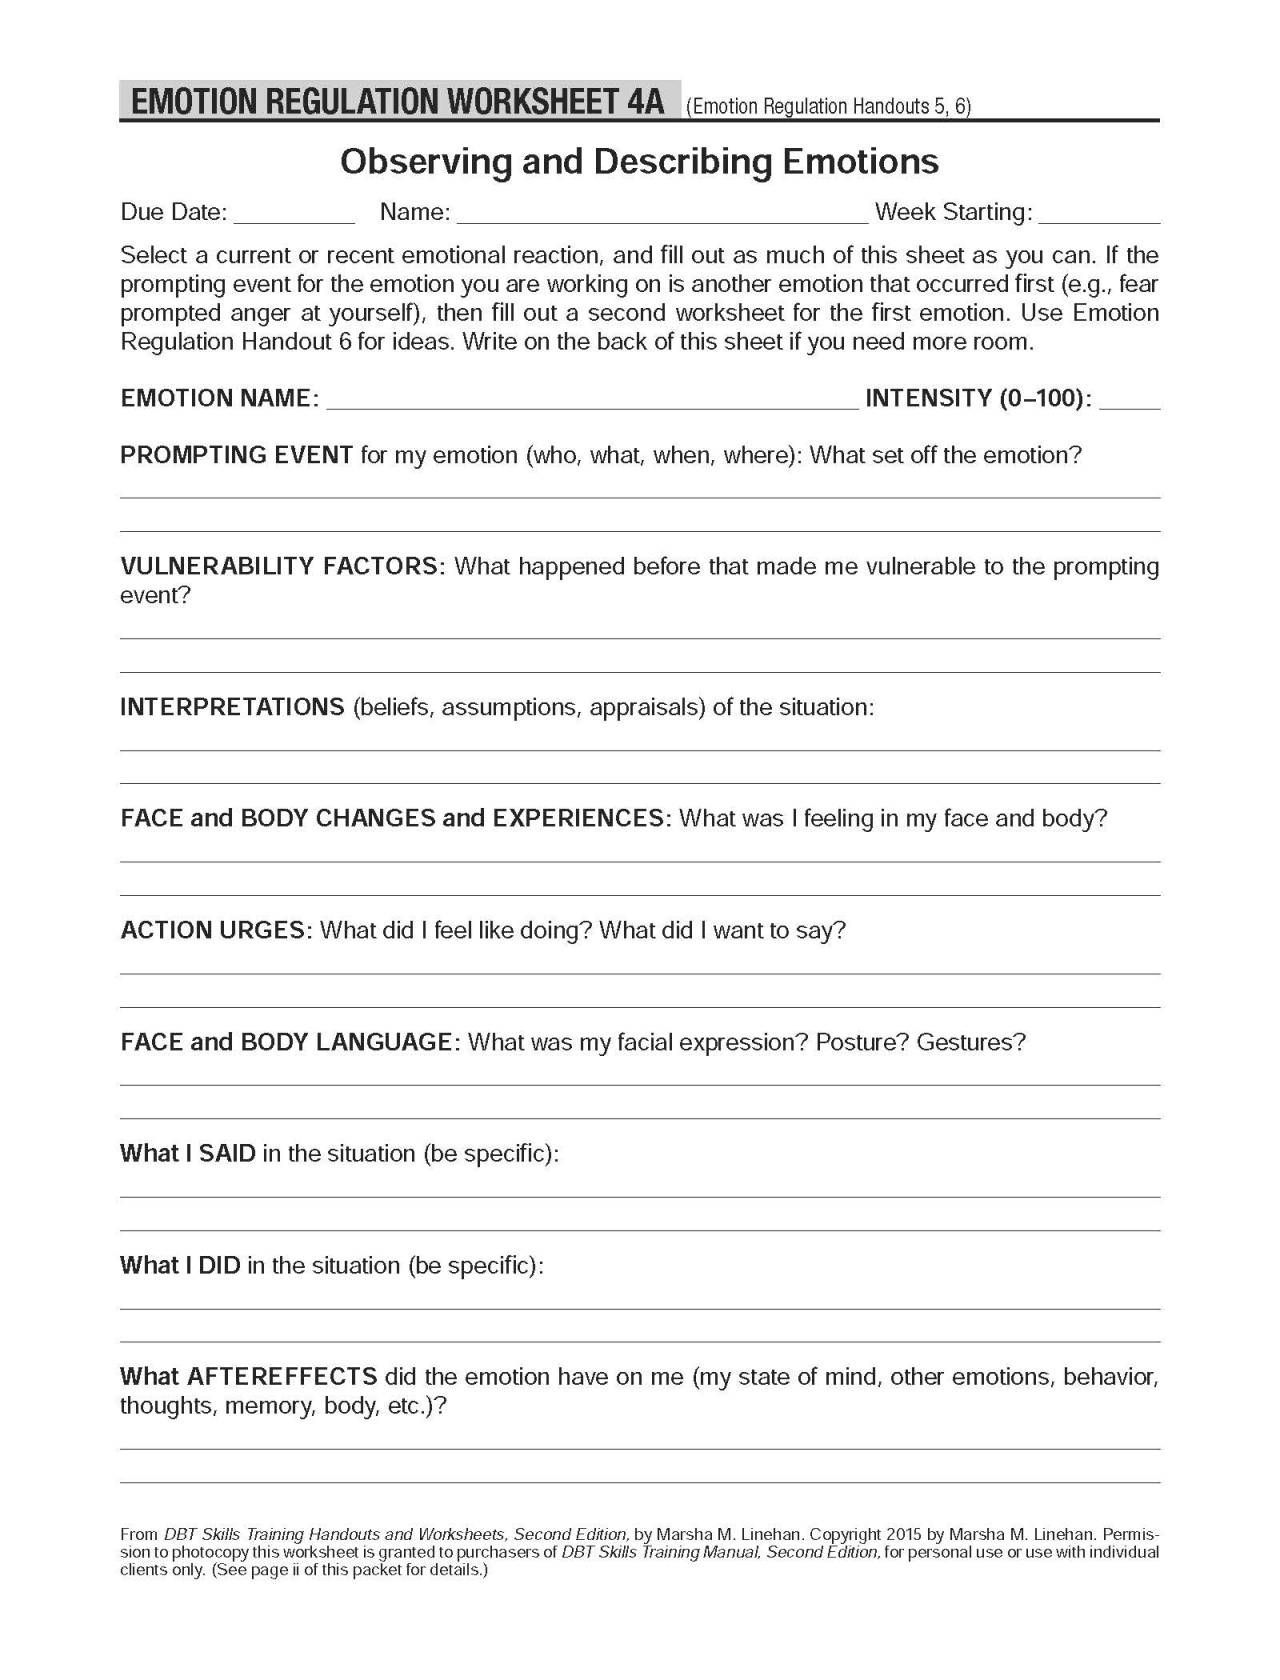 Worksheets Dbt Worksheets dbt self help resources observing and describing emotions these worksheets accompany the emotion regulation handout 6 also look a